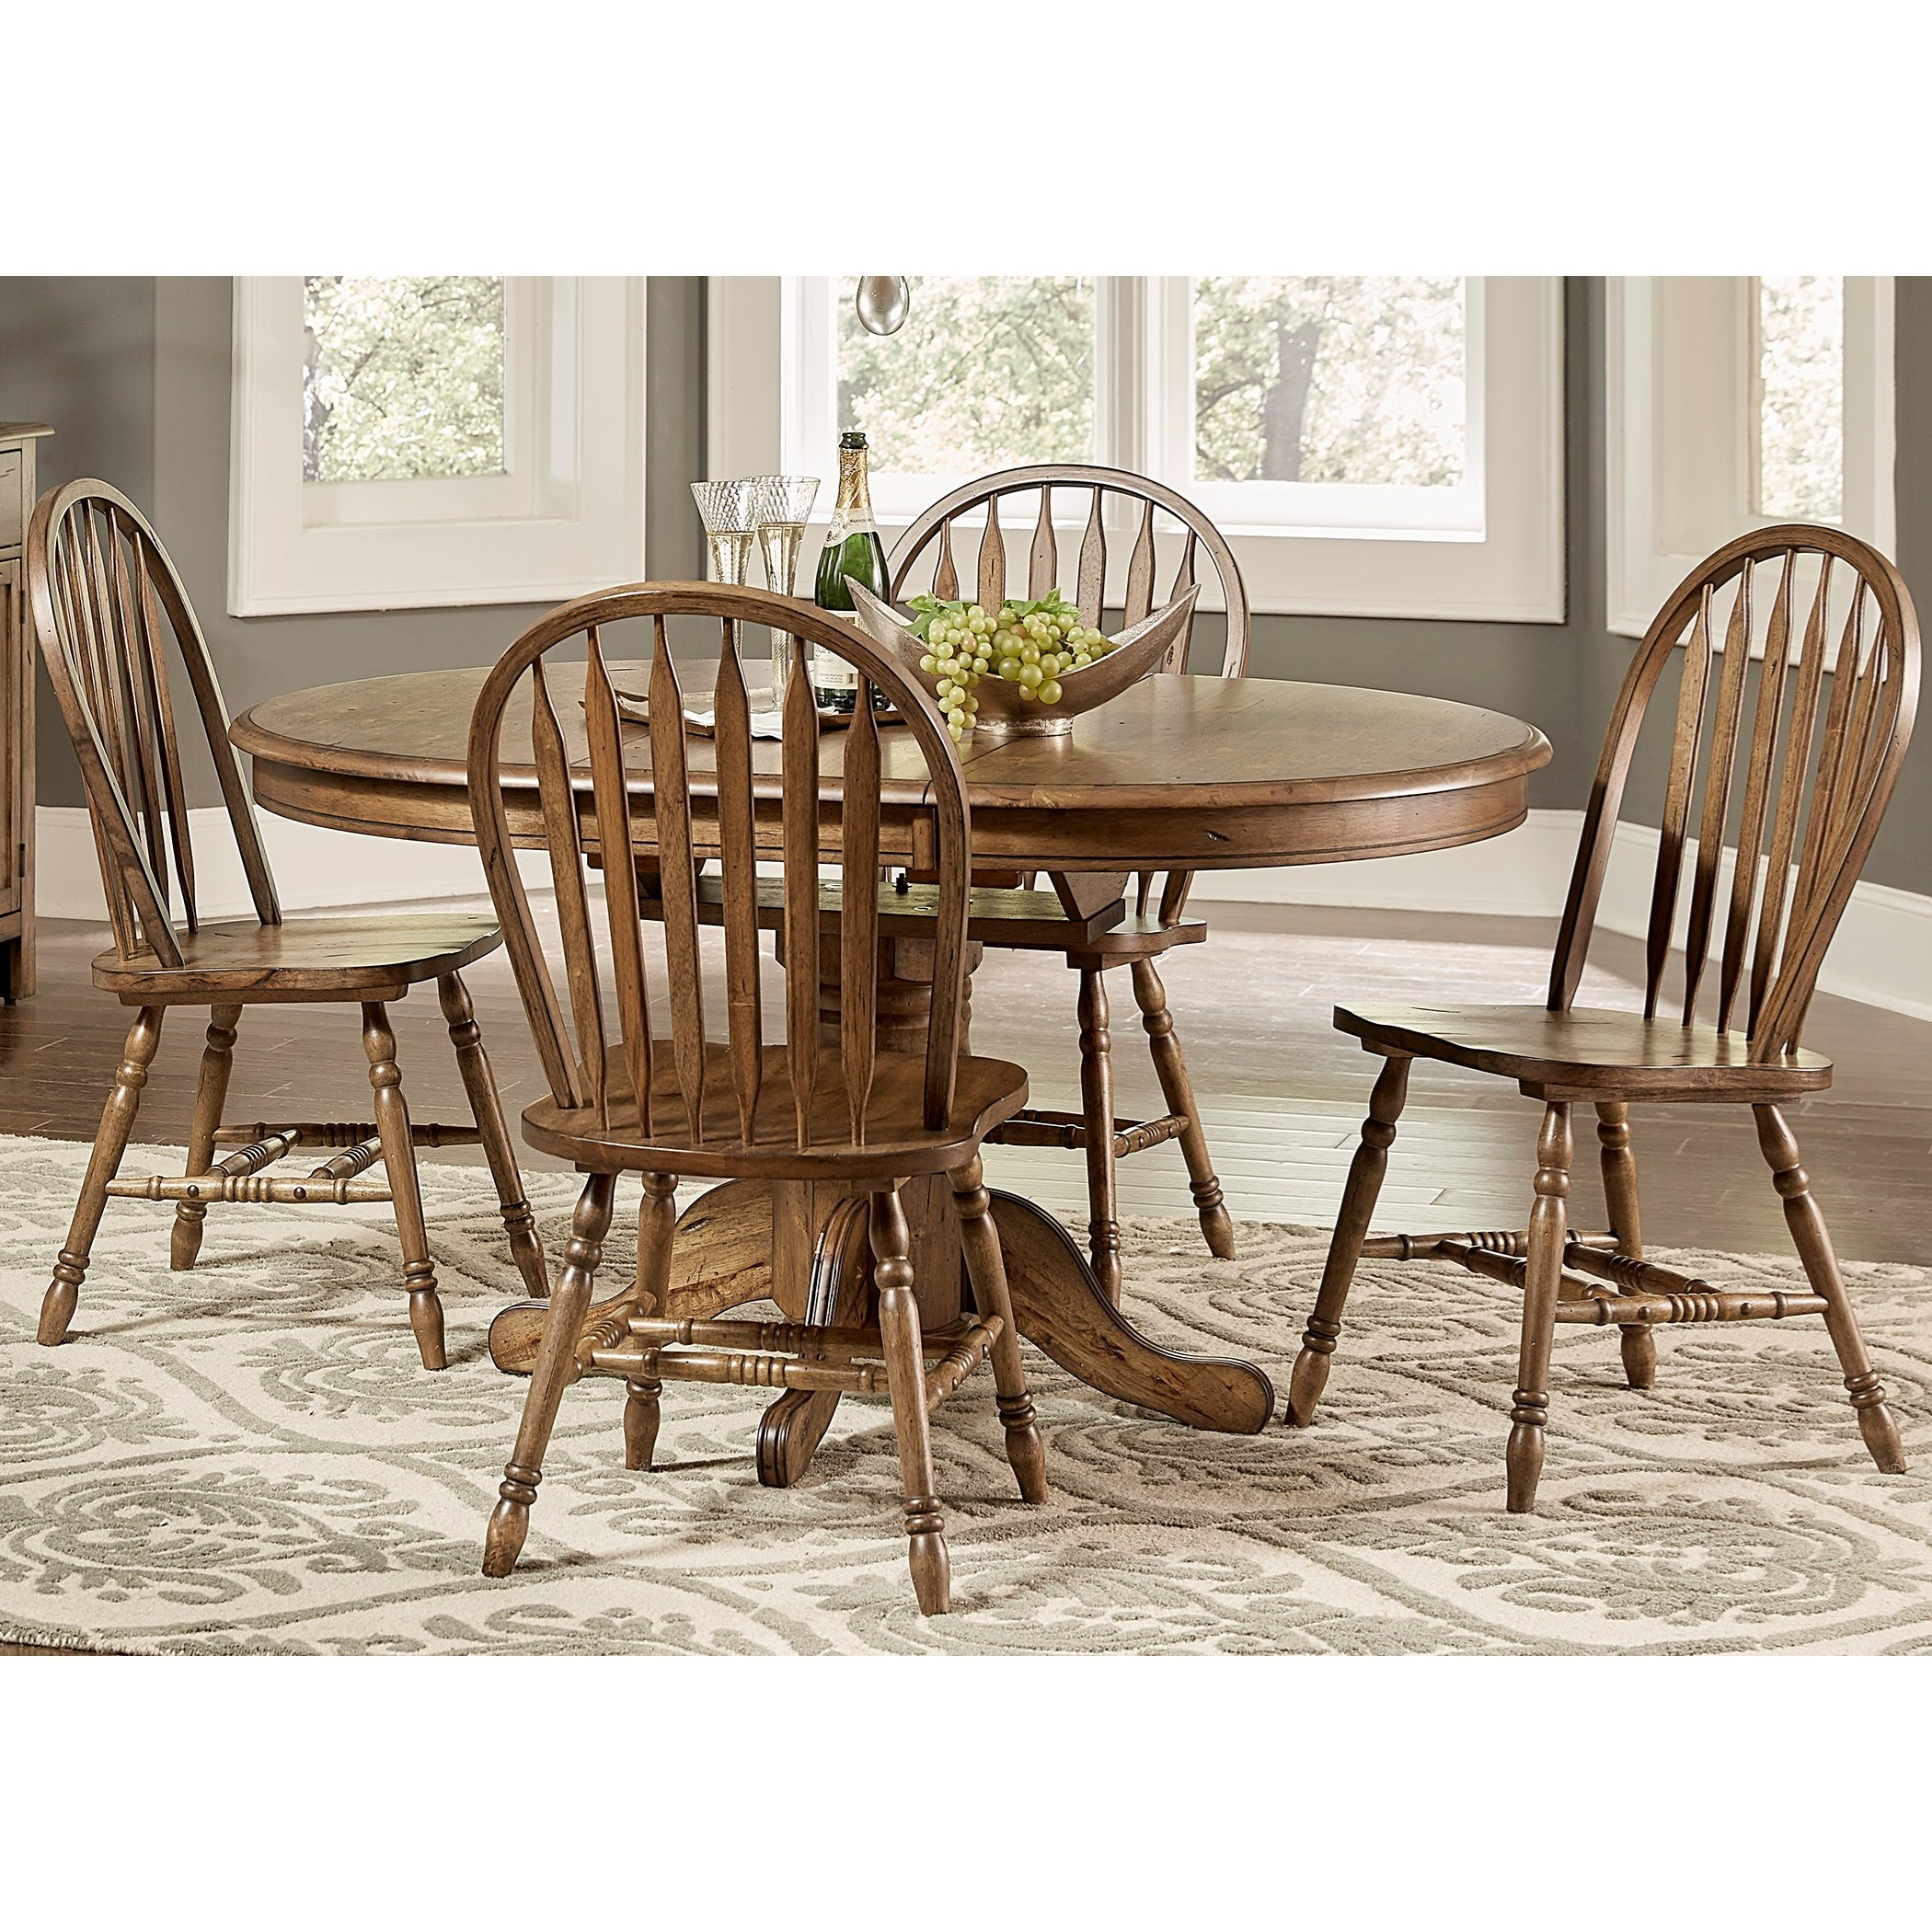 Carolina Crossing Pedestal Table and Chair Set by Freedom Furniture at Ruby Gordon Home